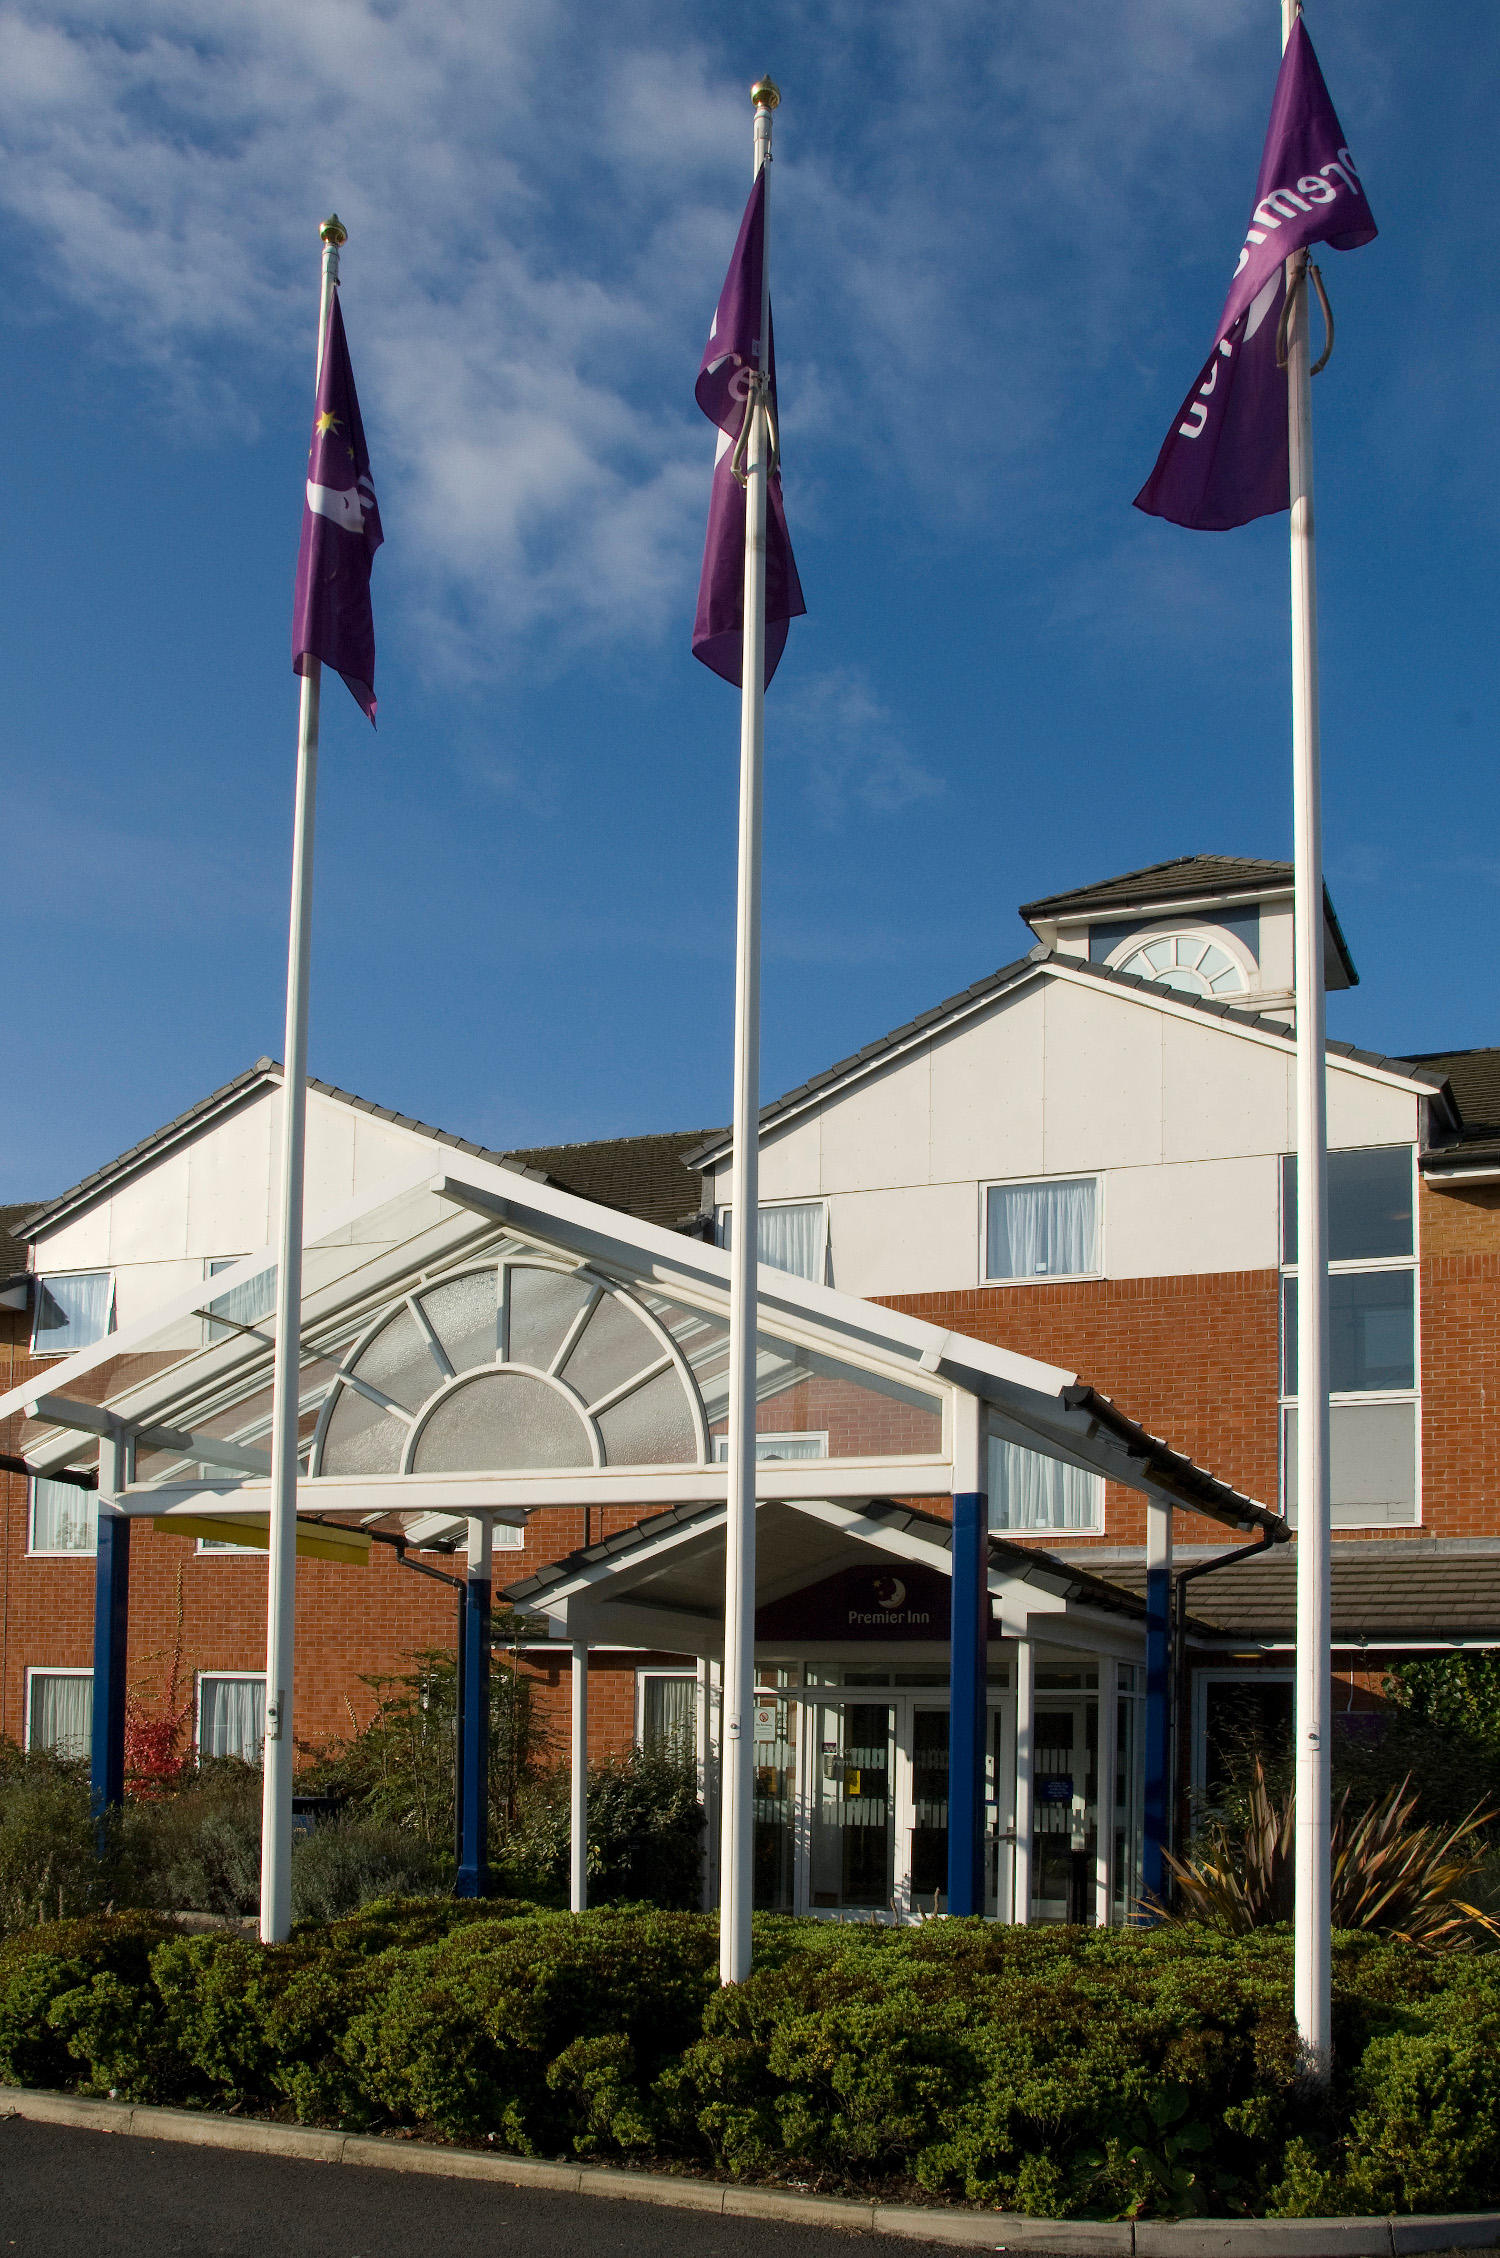 Premier Inn Middlesbrough Central (James Cook Hospital) hotel